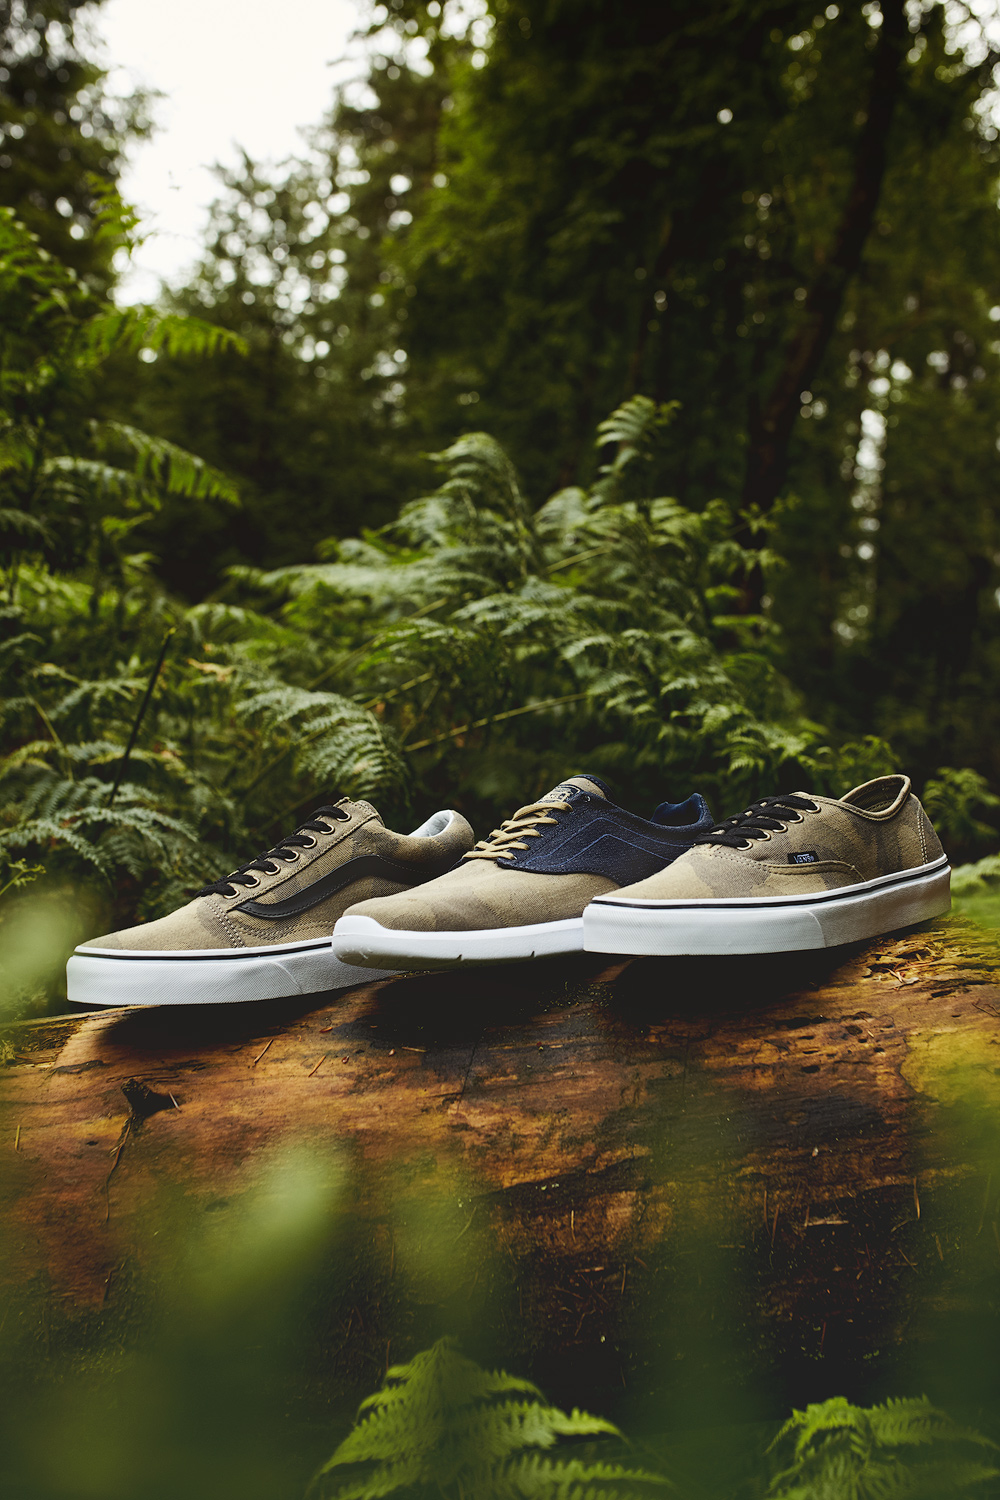 Vans Camo Pack shot by Nicholas White on location at Fernworthy Forest for Pro Direct Select